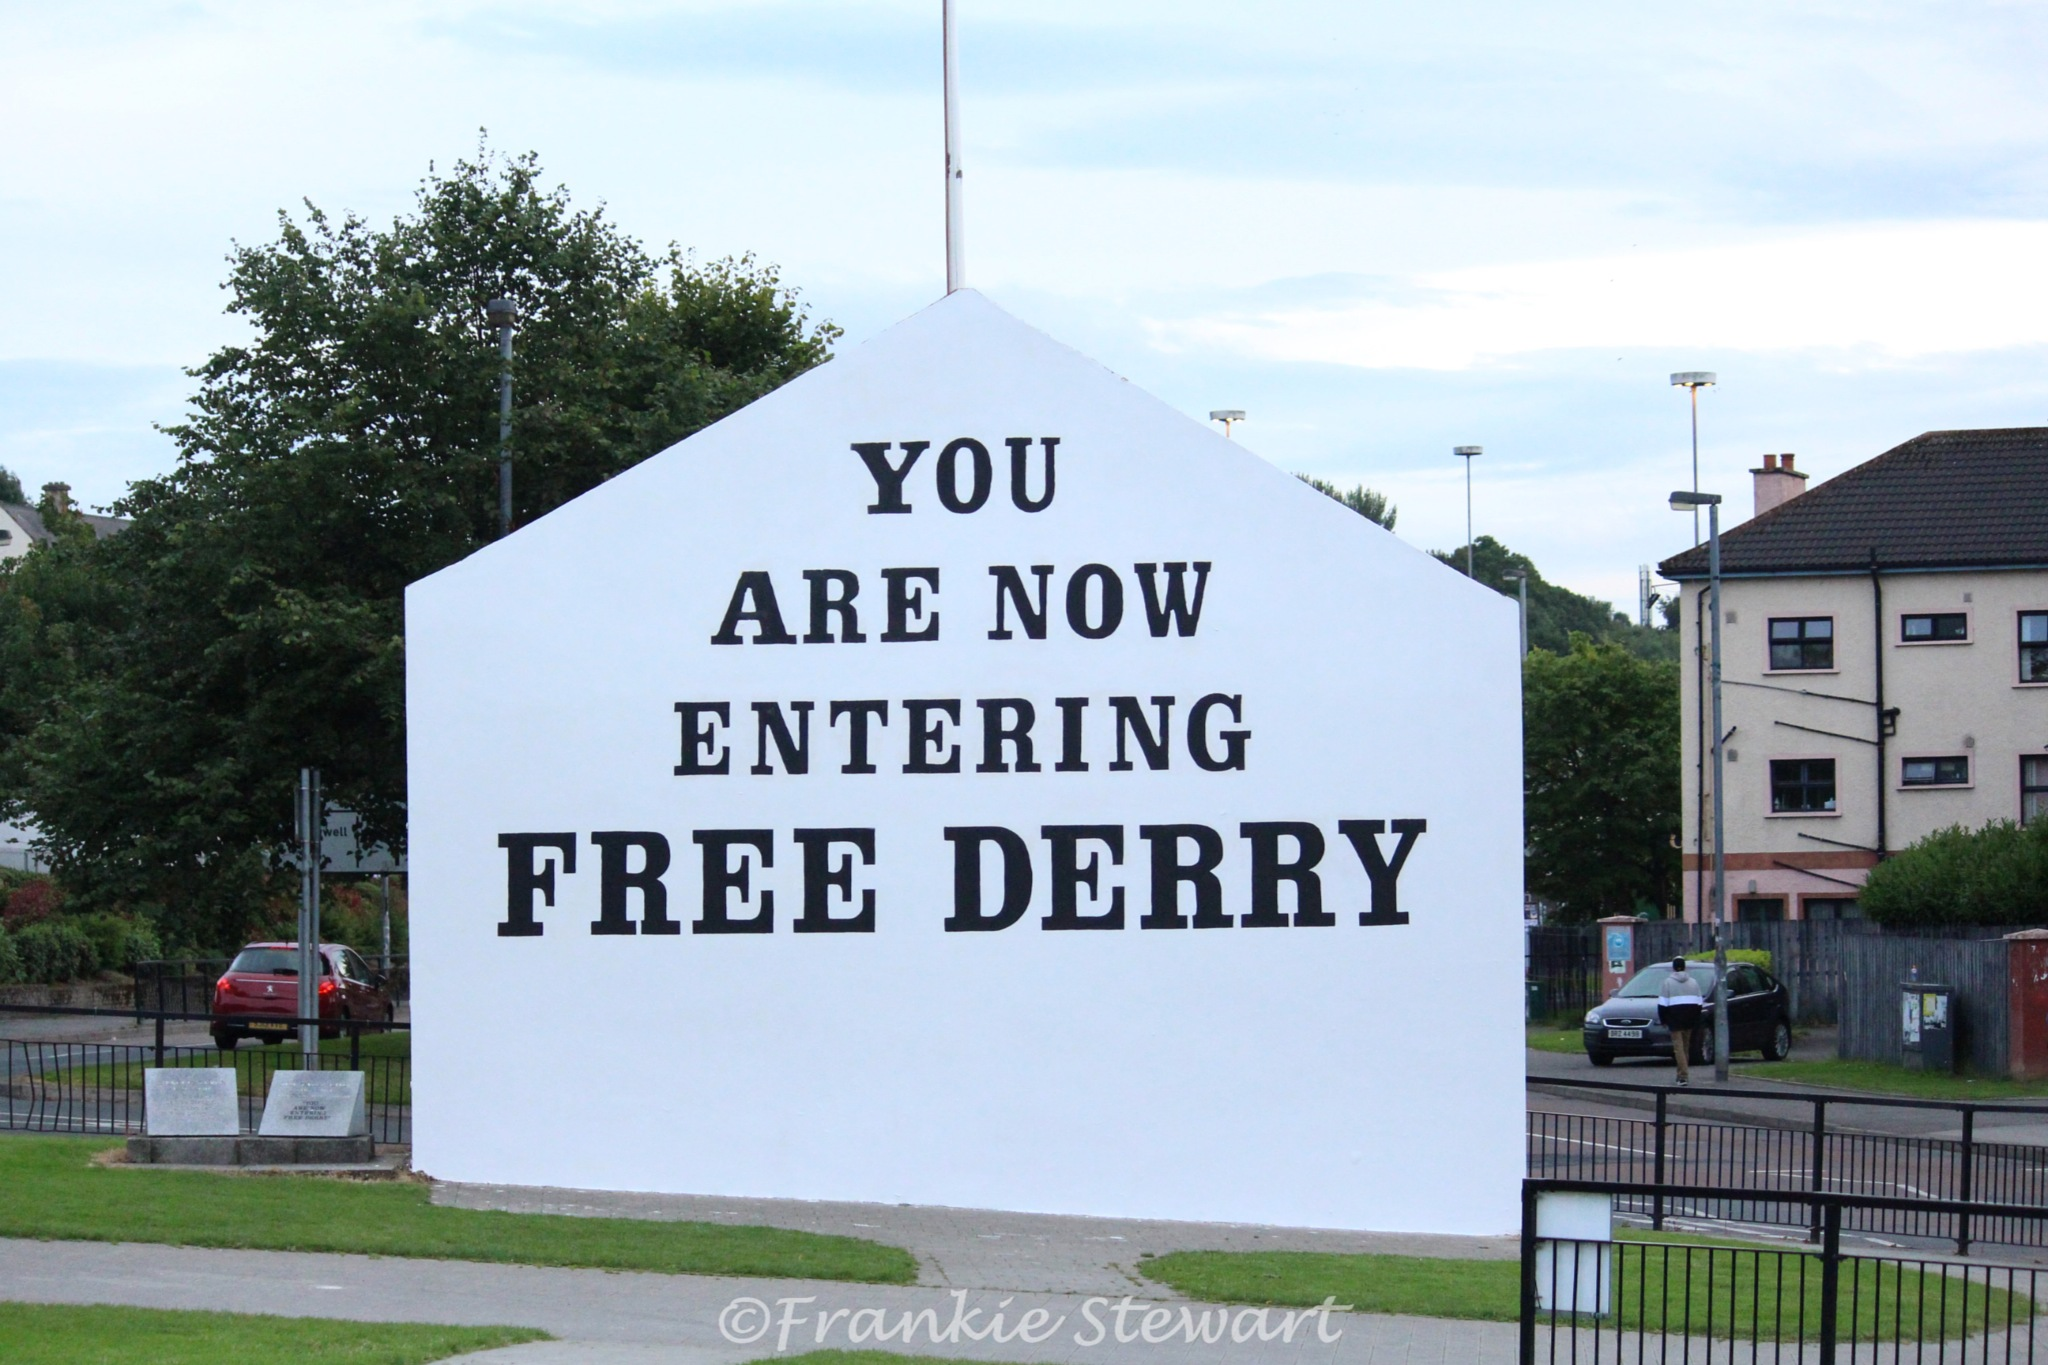 Free Derry Wall by FrankieS